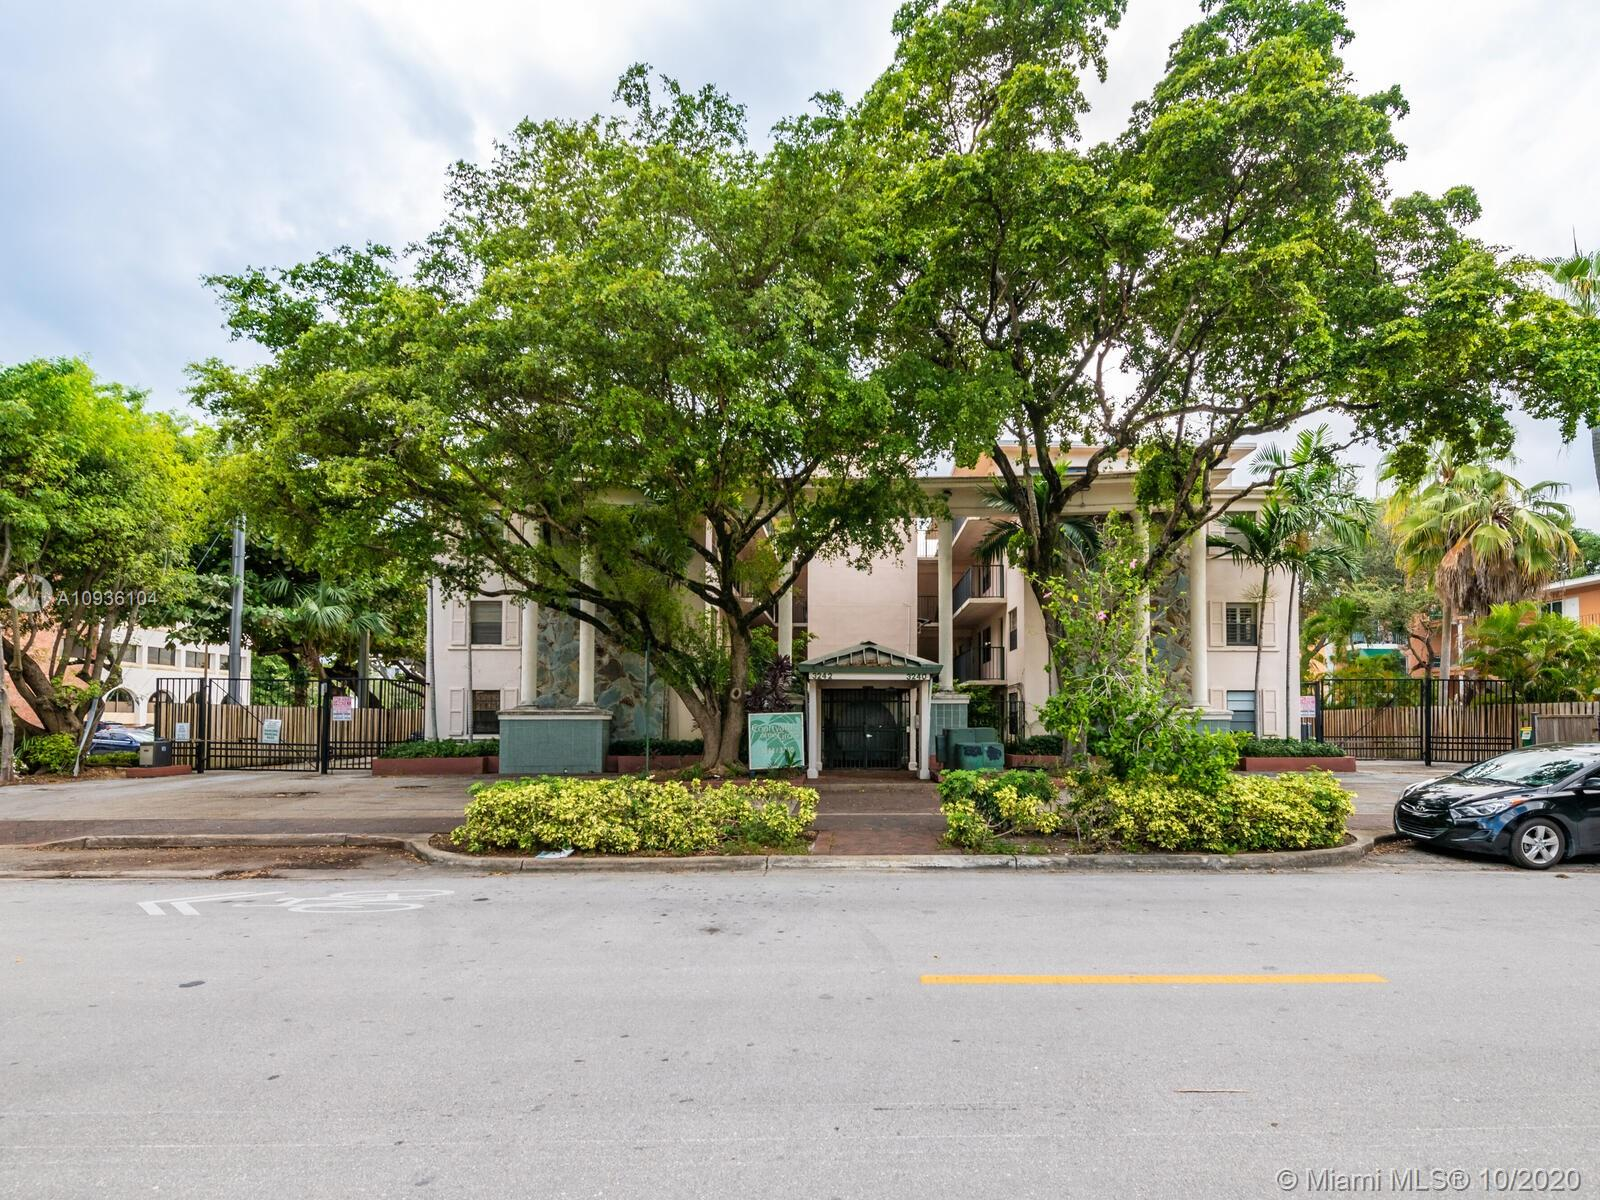 Great apartment in the heart of Coconut Grove.New beautiful white kitchen, light and airy, 2 bedrooms 1 bath remodeled. Close to Cocowalk, restaurants and movies. Walk-able 10.There is a common laundry. Gated and secure parking for 2 cars!. Two pools and tropical landscape .Pet friendly.